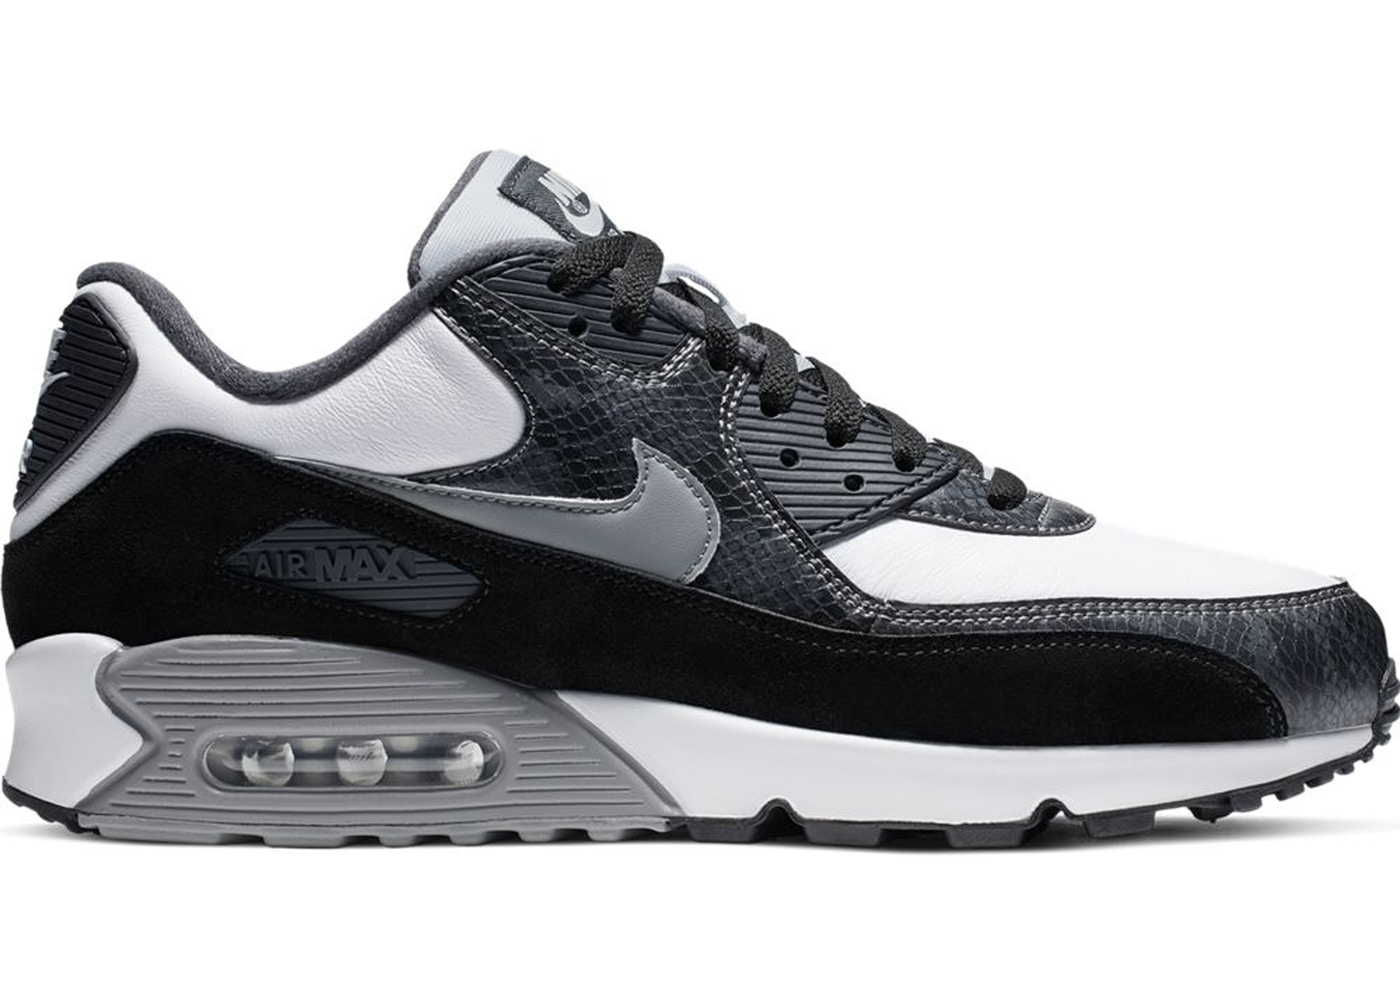 9d17f72edd Buy Nike Air Max 90 Shoes & Deadstock Sneakers